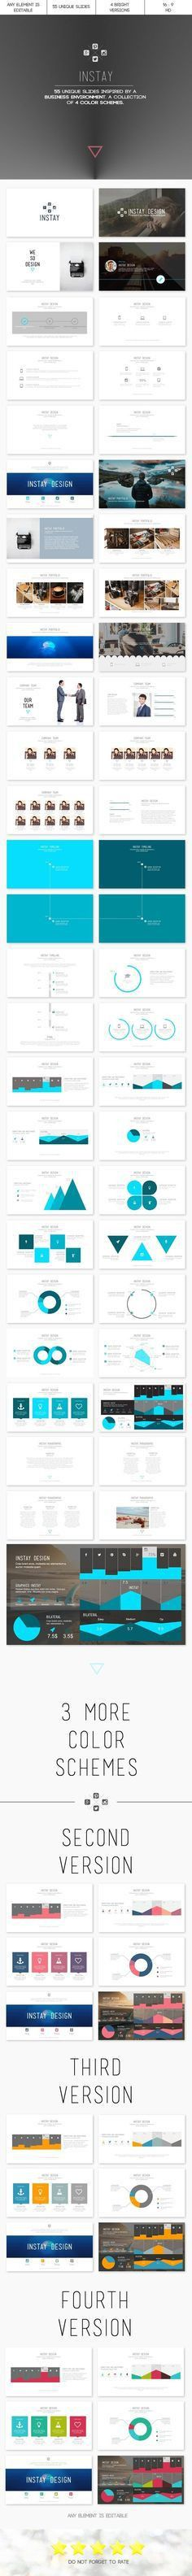 CUBE - Creative Theme (PowerPoint Templates) | Creative ...